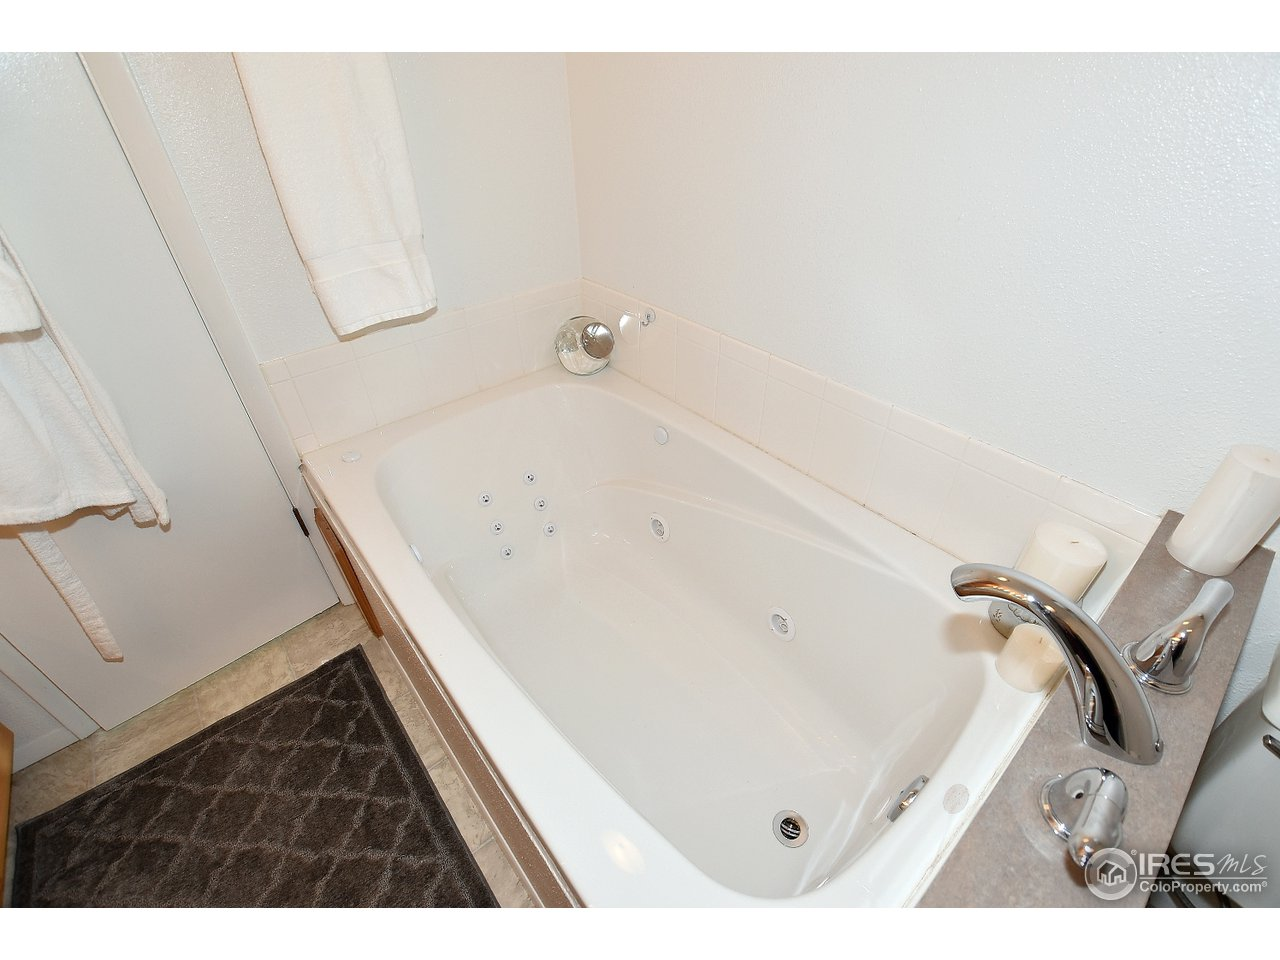 Jetted tub in the master bath